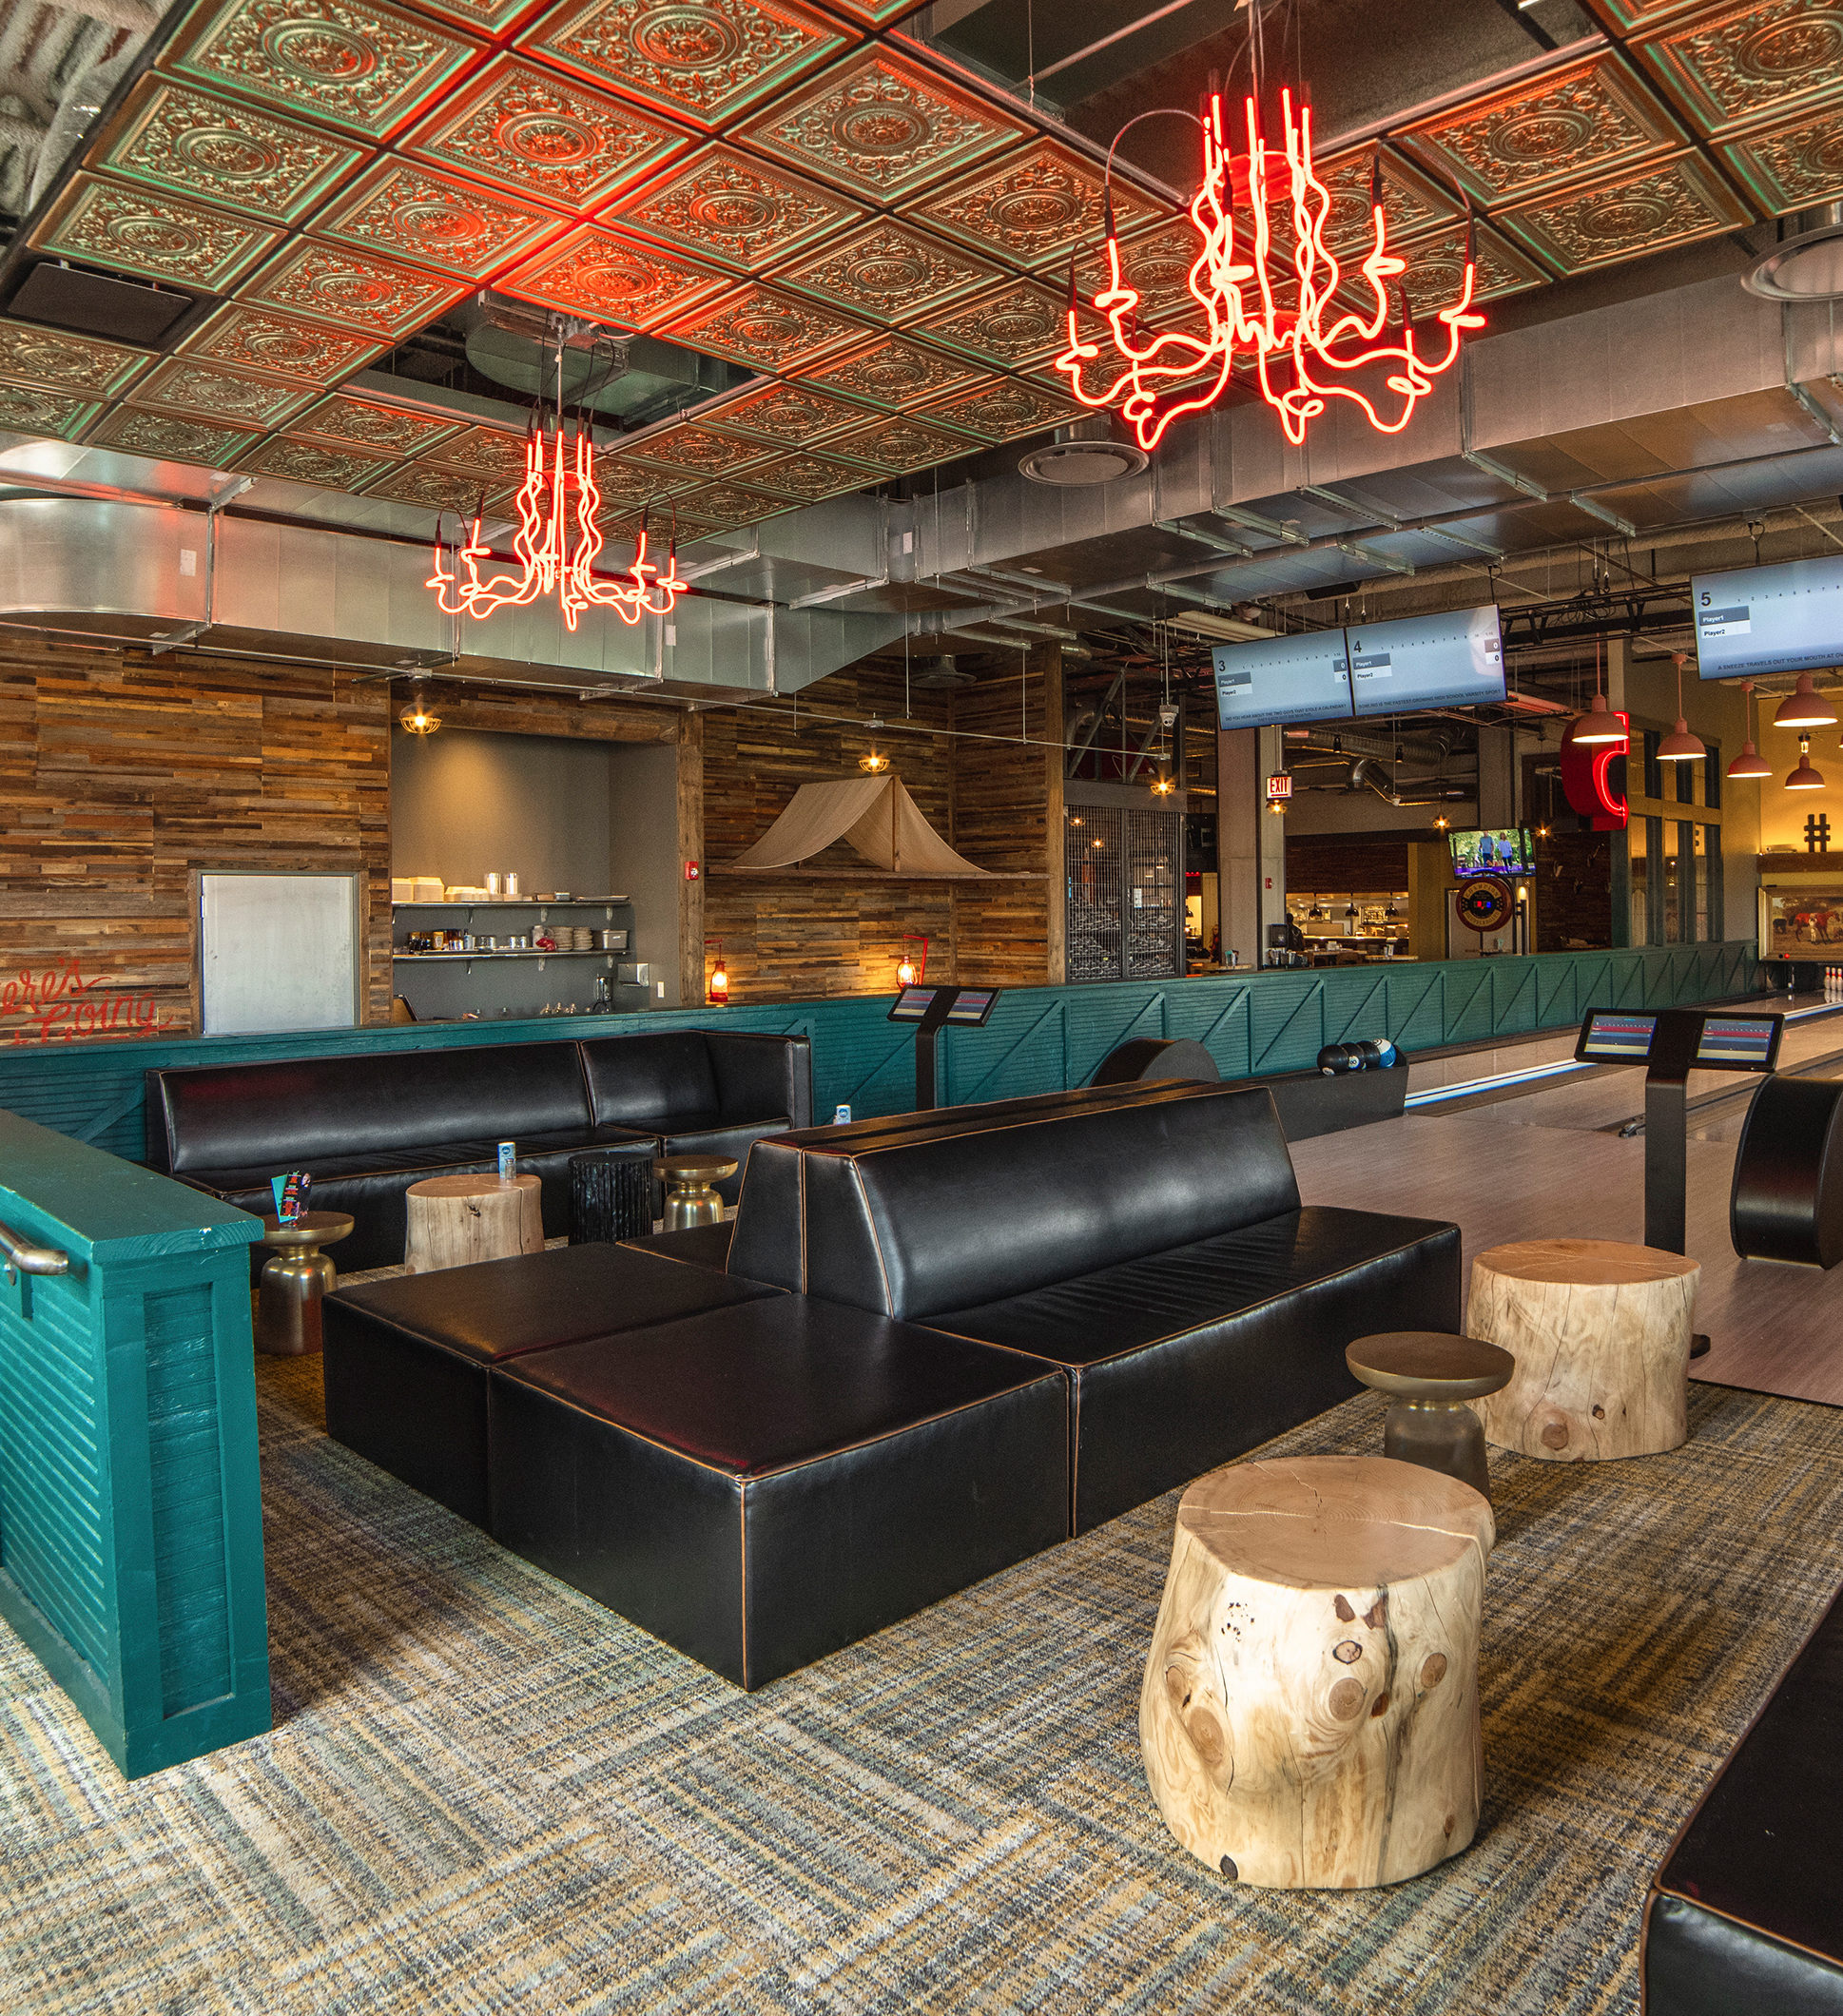 FLOR tan plaid commercial carpet tiles, black booths, teal half walls, and orange neon chandeliers.